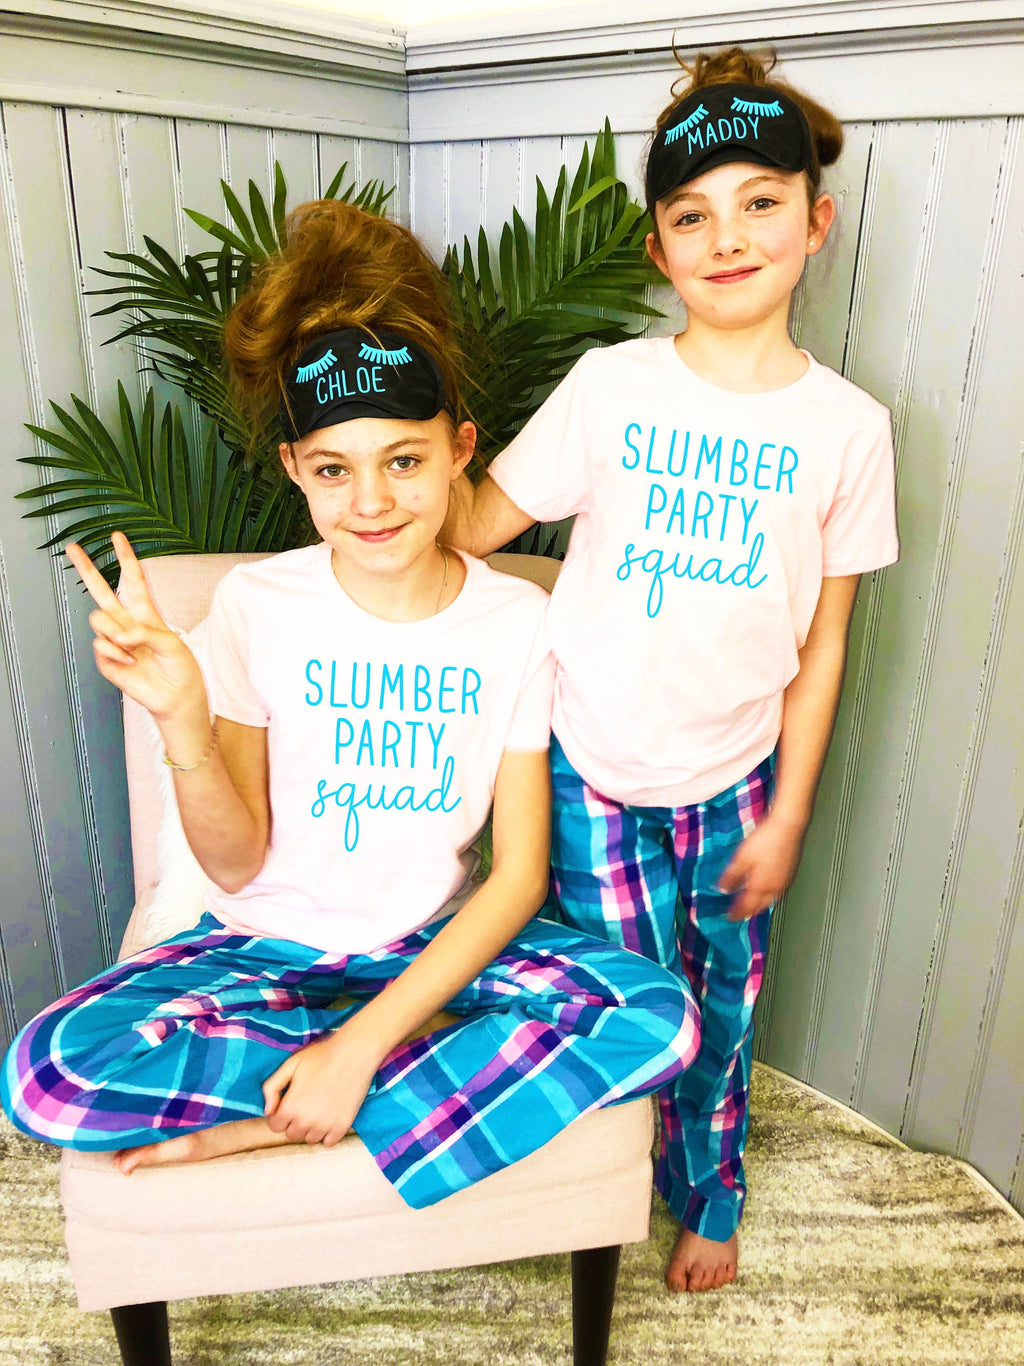 slumber party squad, slumber birthday party, teen bday shirt, birthday squad, personalized teenager pjs, sleepover squad pjs, slumber party